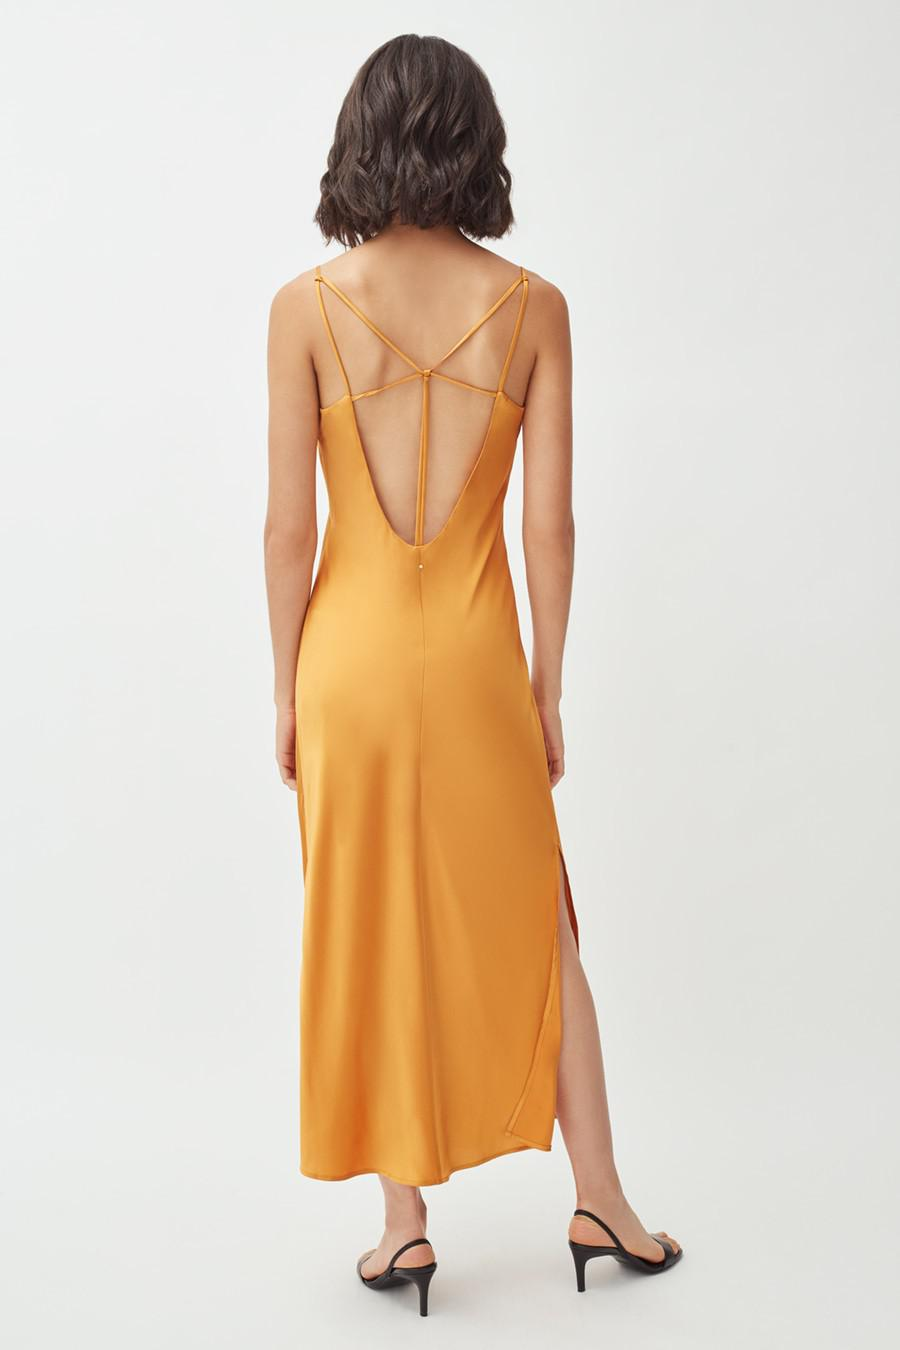 Women's Charmeuse Slip Dress in Citrine | Size: Large | Silk Charmeuse by Cuyana 3